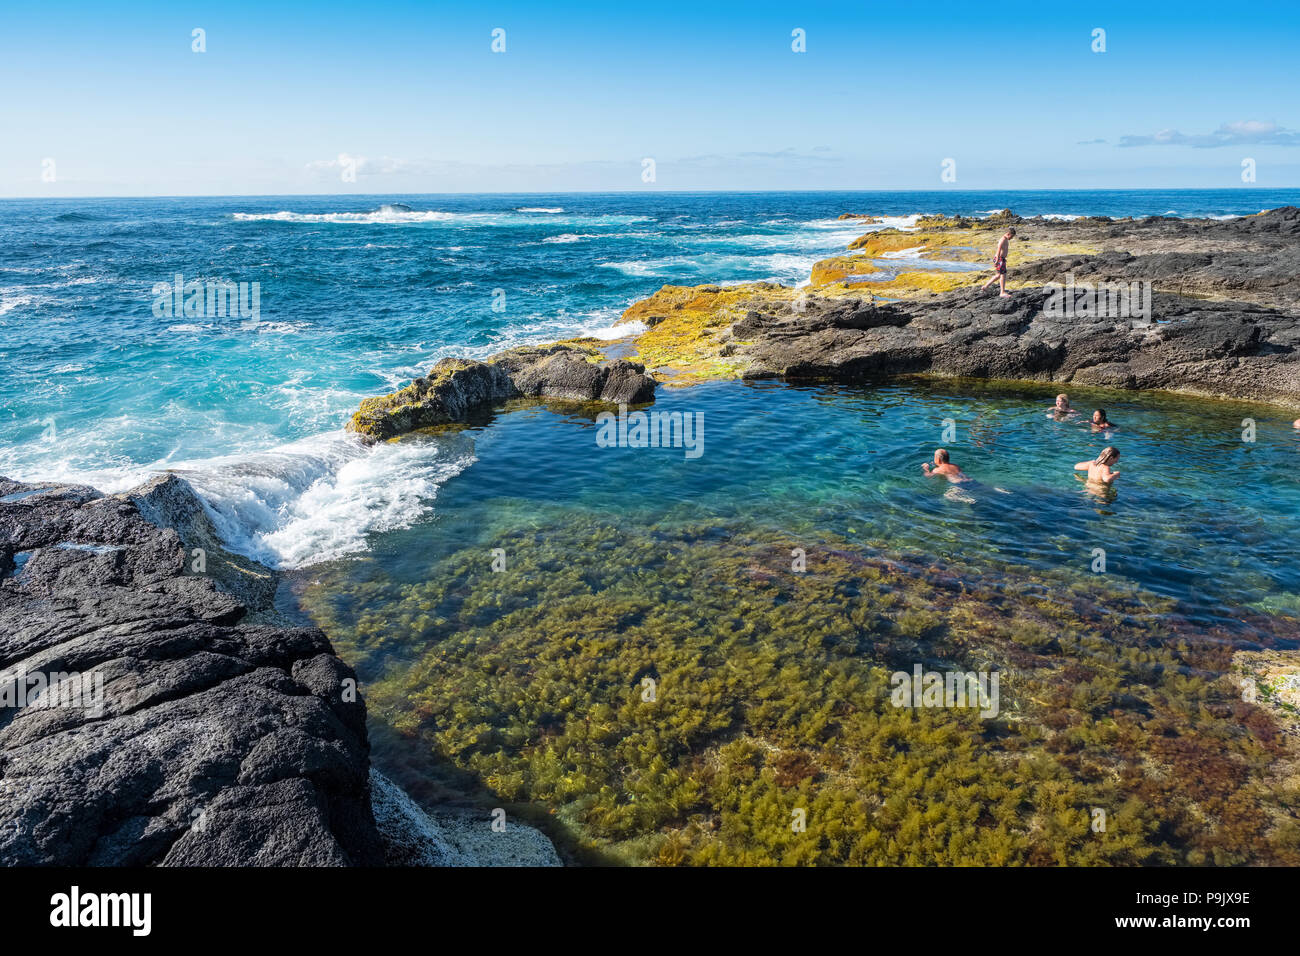 Natural swimming pools on the coast of Sao Miguel, Azores - Stock Image